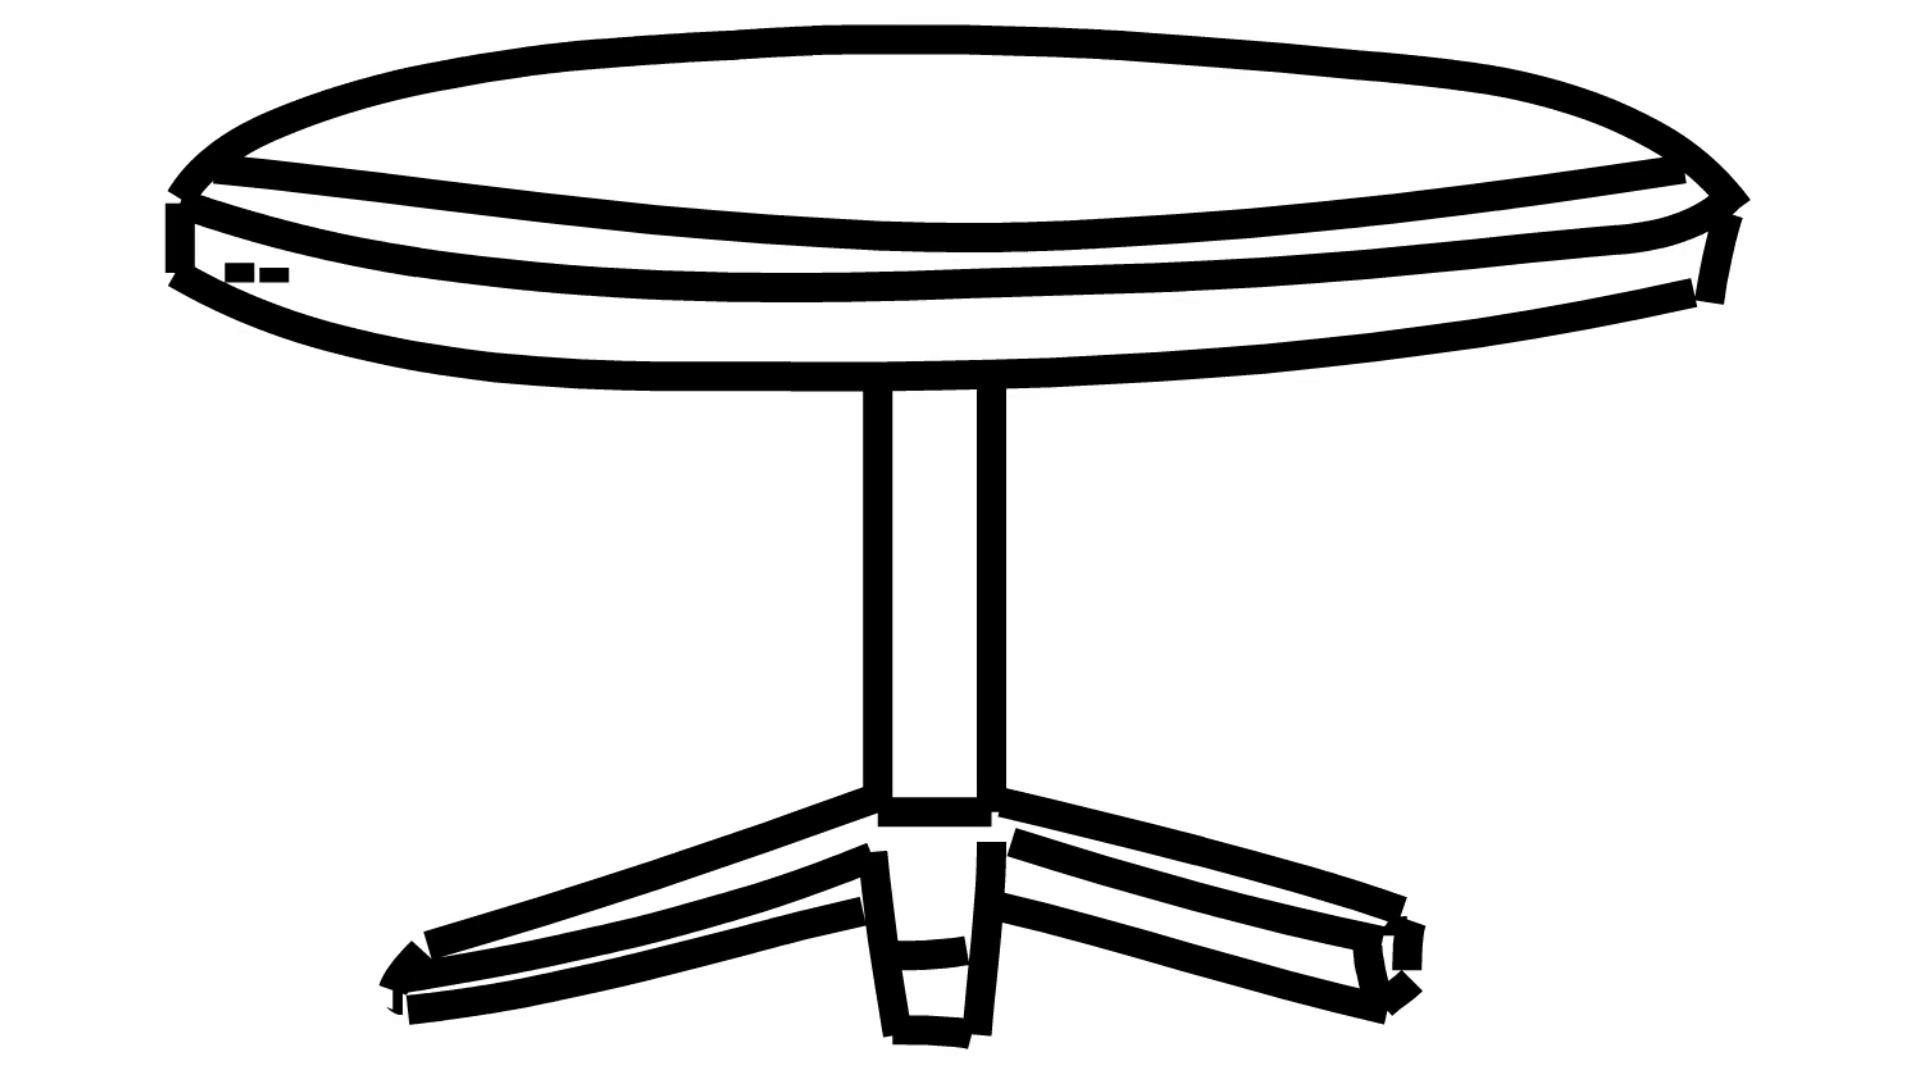 Small Table Drawing